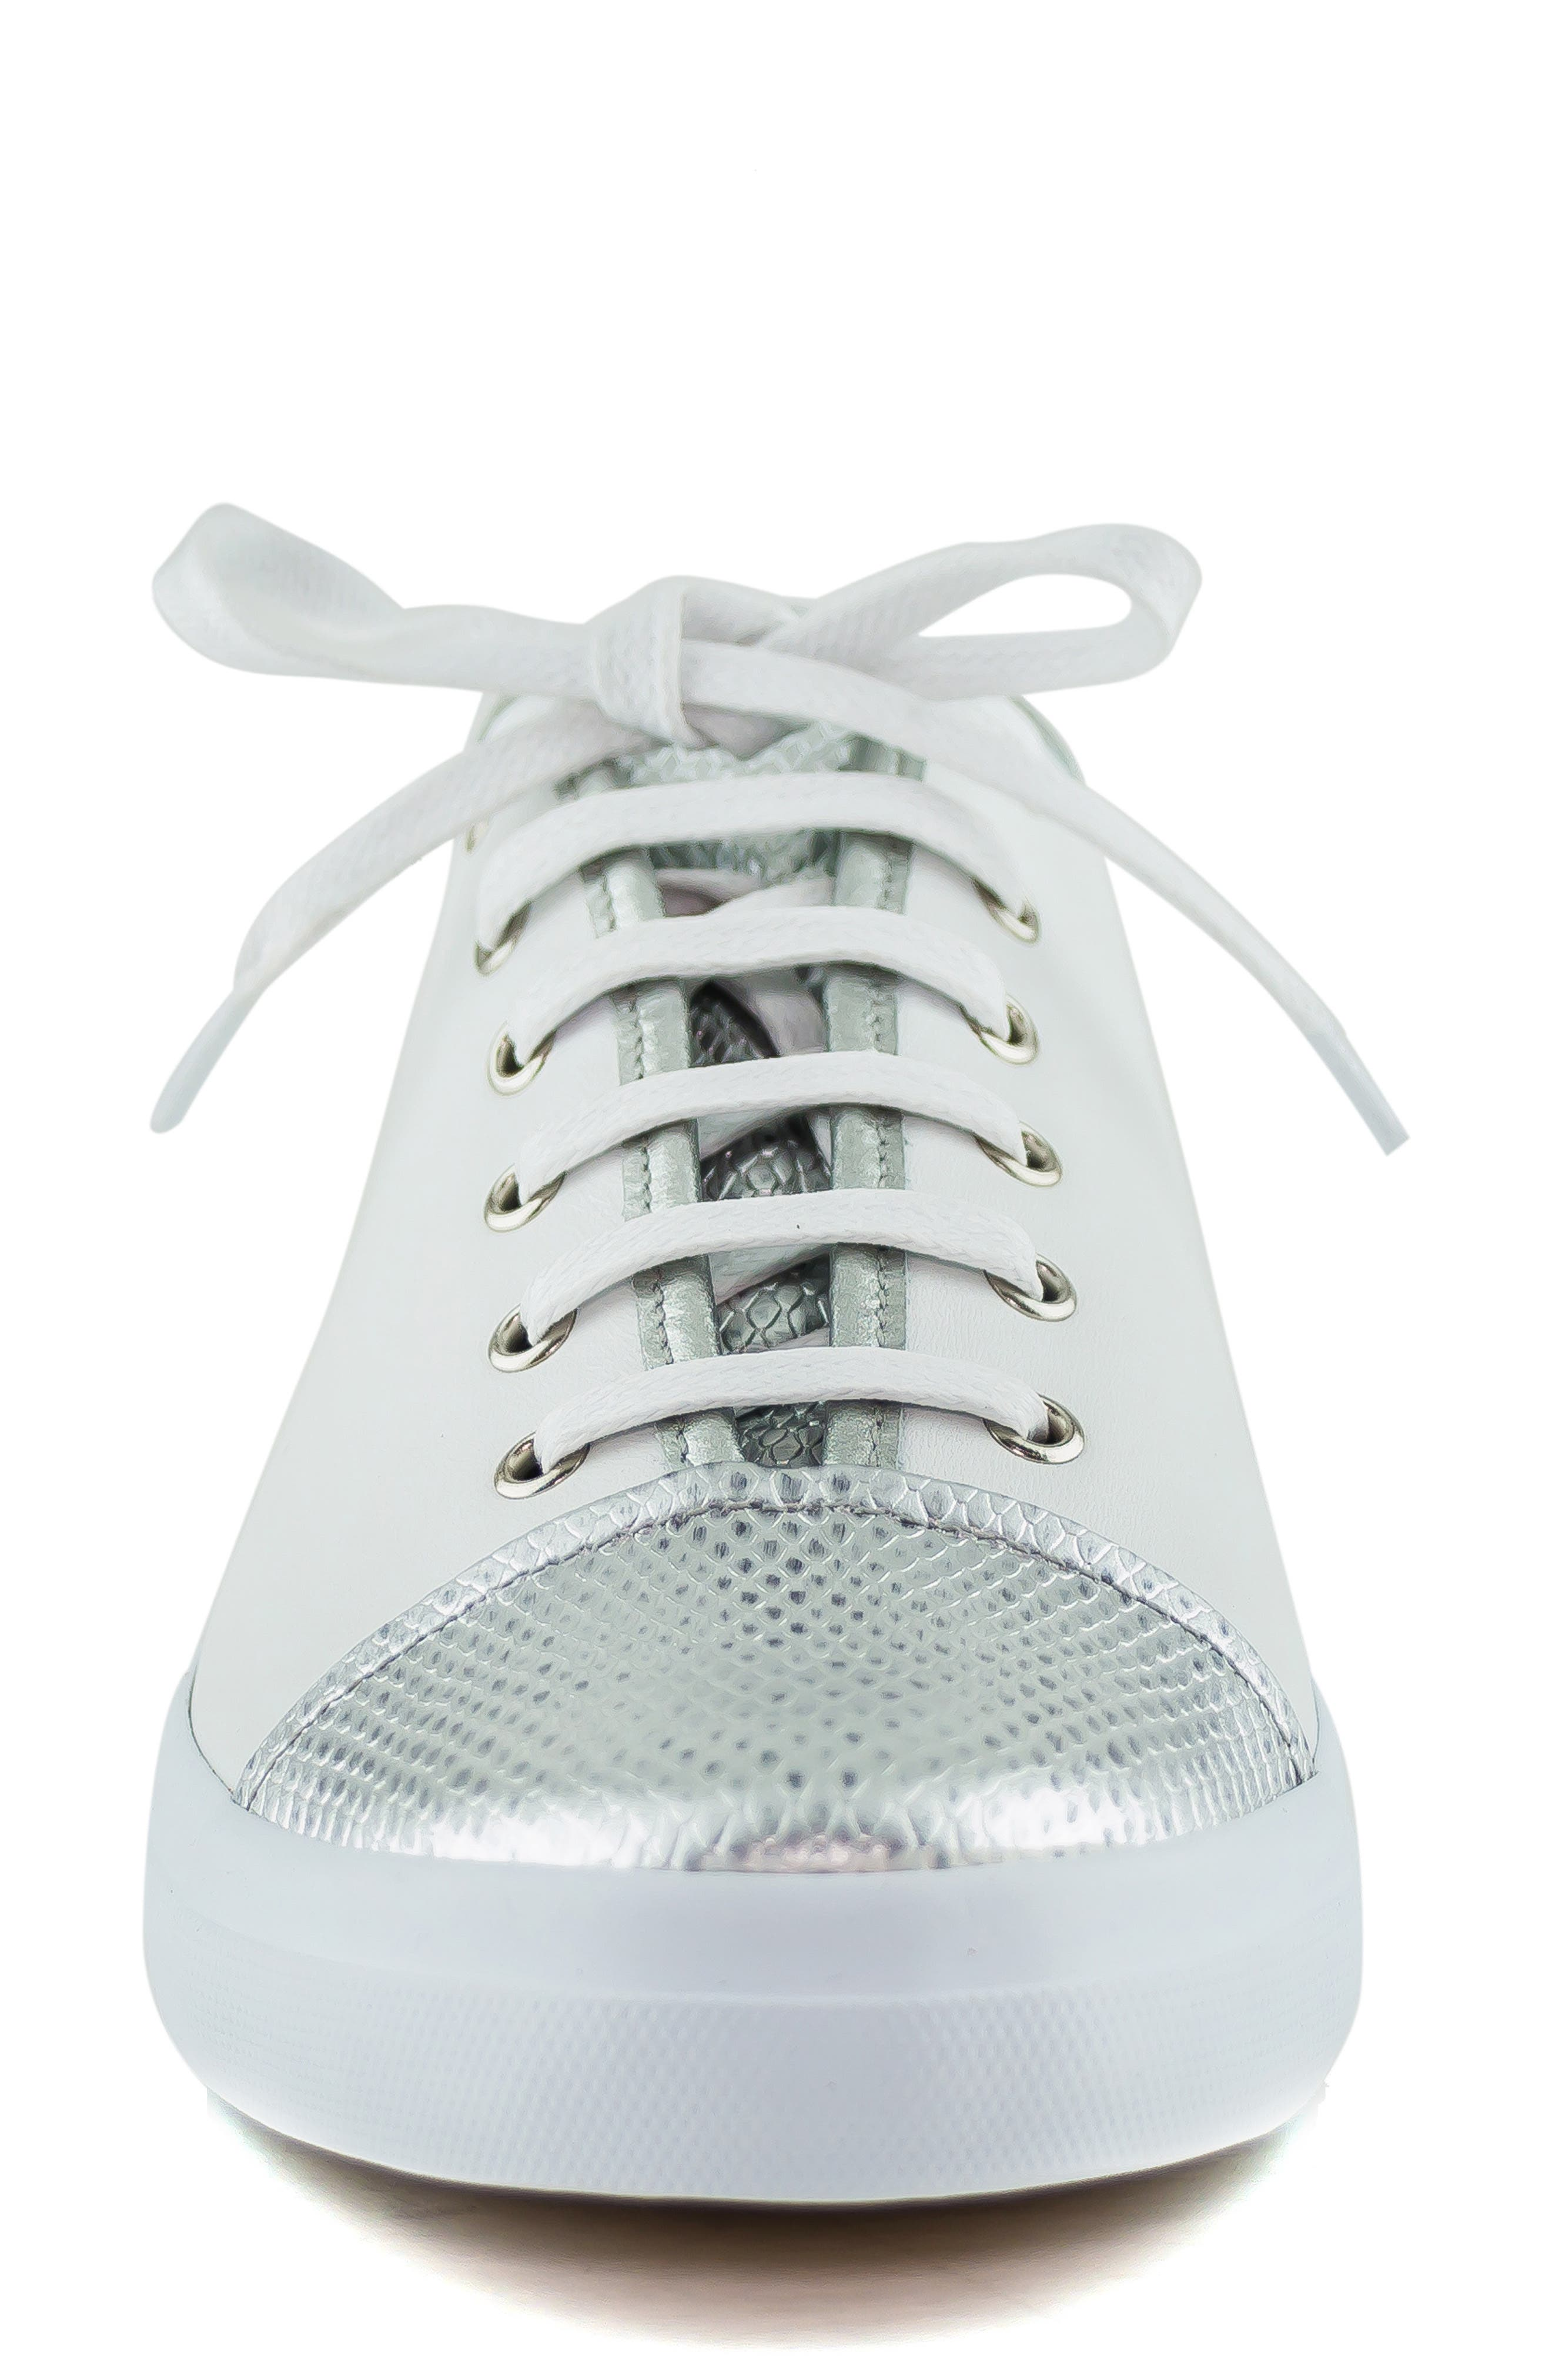 MARC JOSEPH NEW YORK, Bleecker Street Sneaker, Alternate thumbnail 4, color, WHITE/ GIPSY SILVER LEATHER